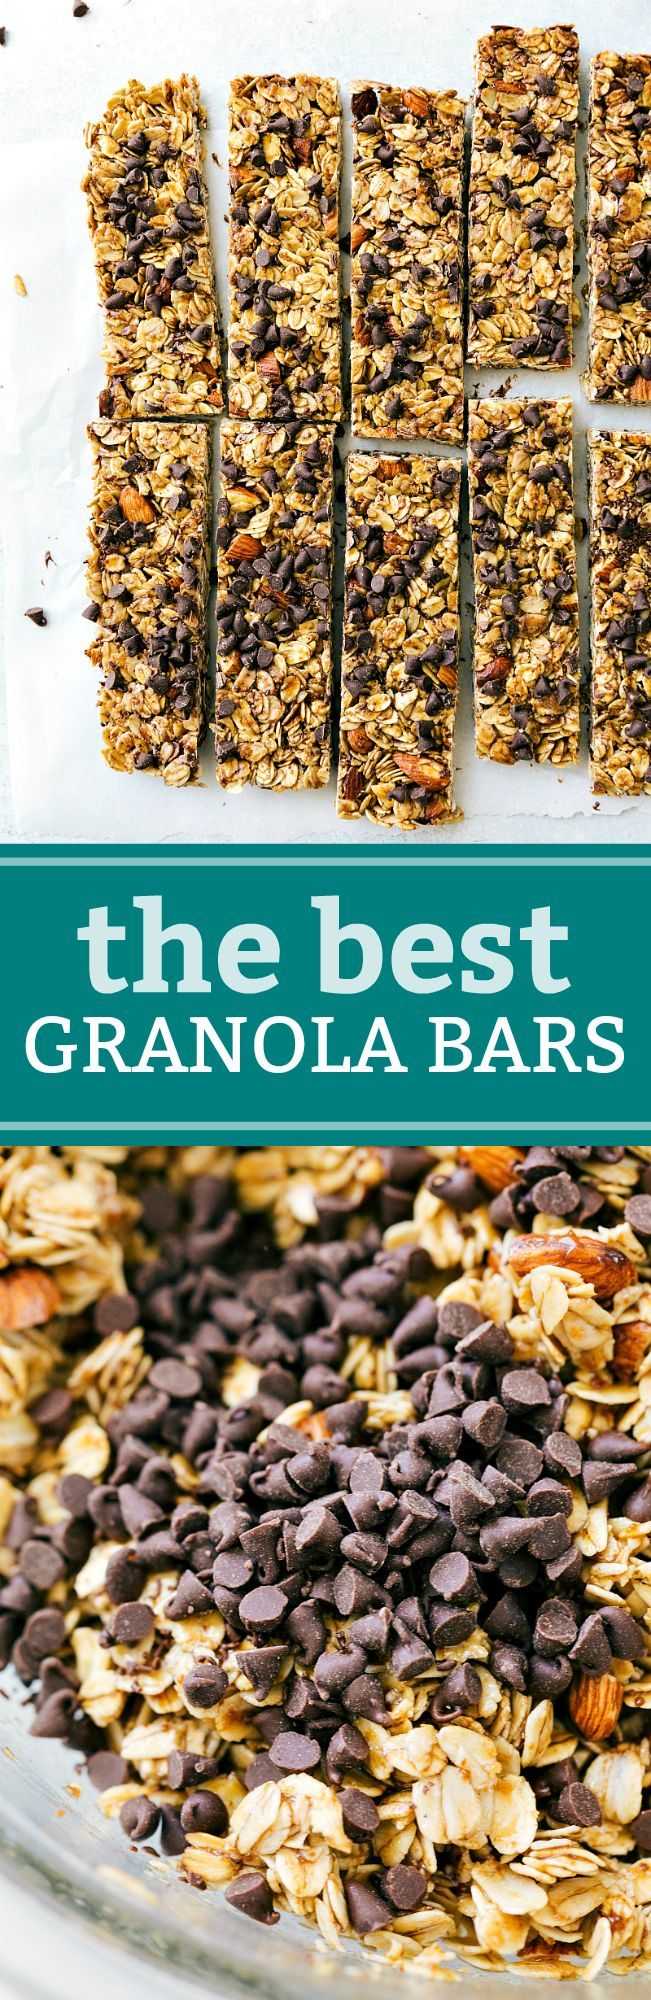 Homemade granola bars made with natural sweeteners, oats, nuts, and chocolate for good measure! Recipe from chelseasmessyapron.com